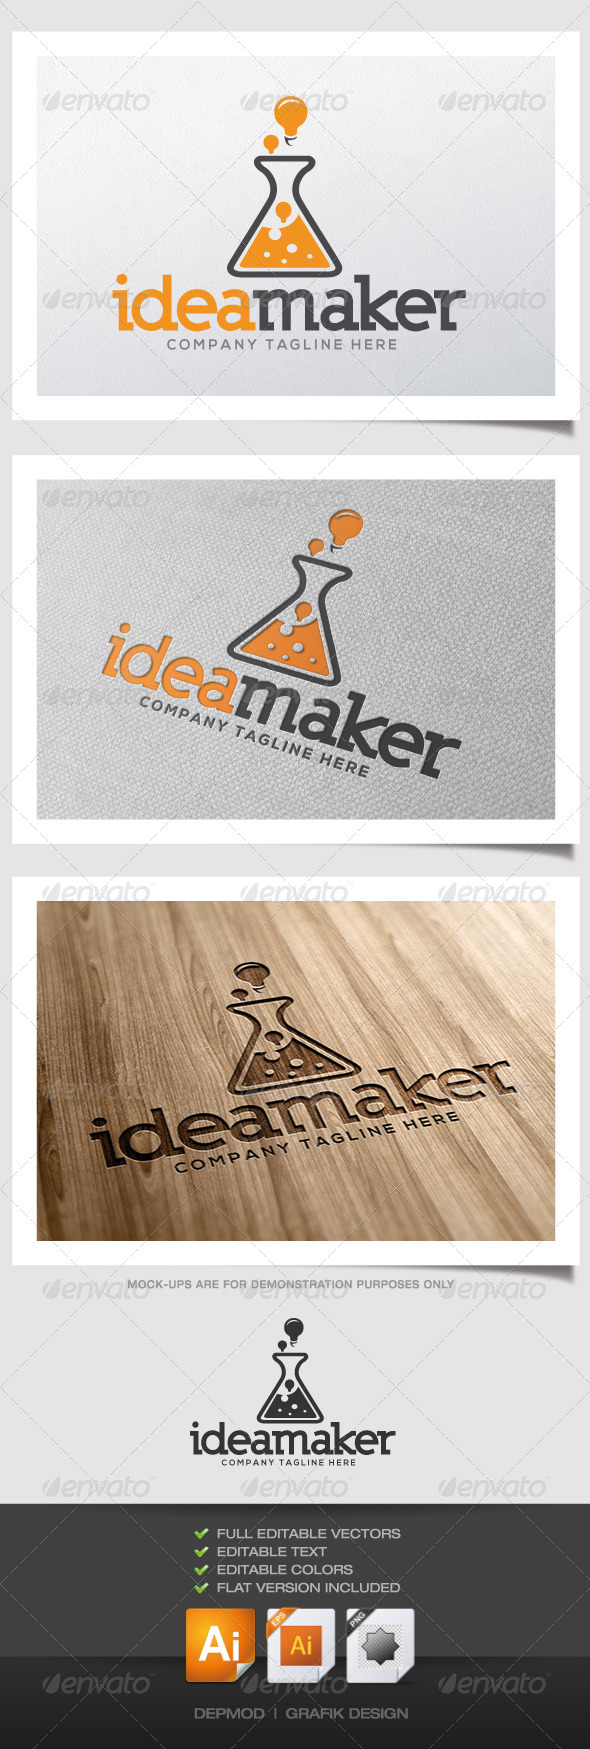 GraphicRiver Idea Maker Logo 4426351